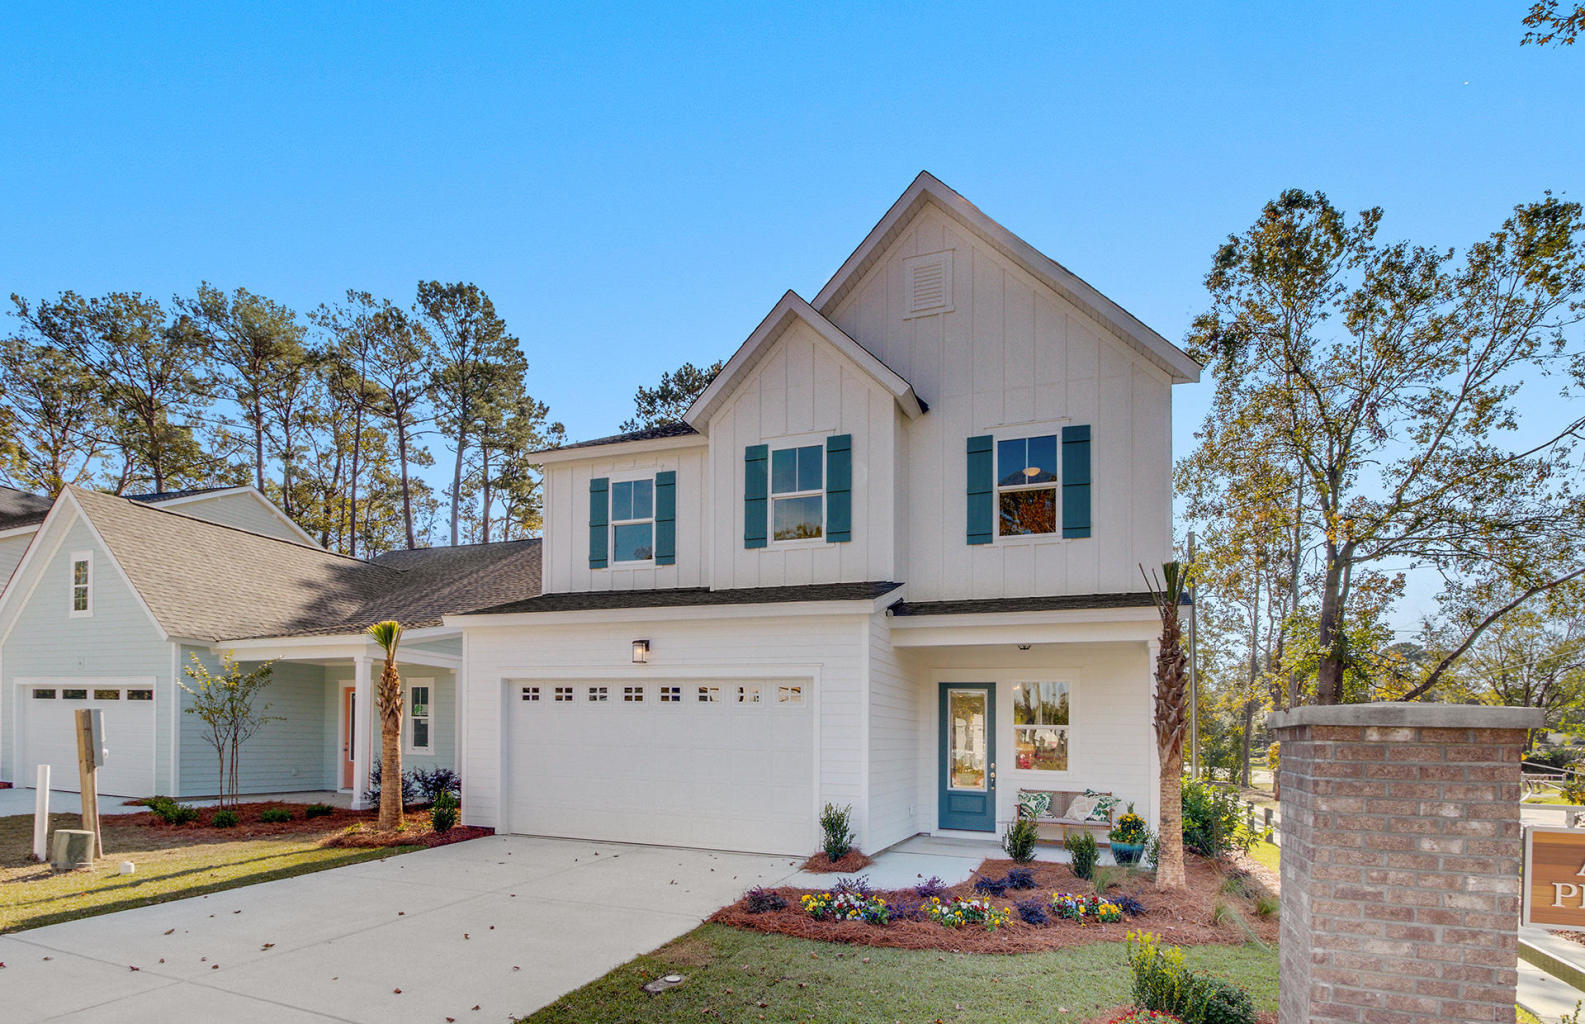 3033 Evening Tide Drive Hanahan, SC 29410